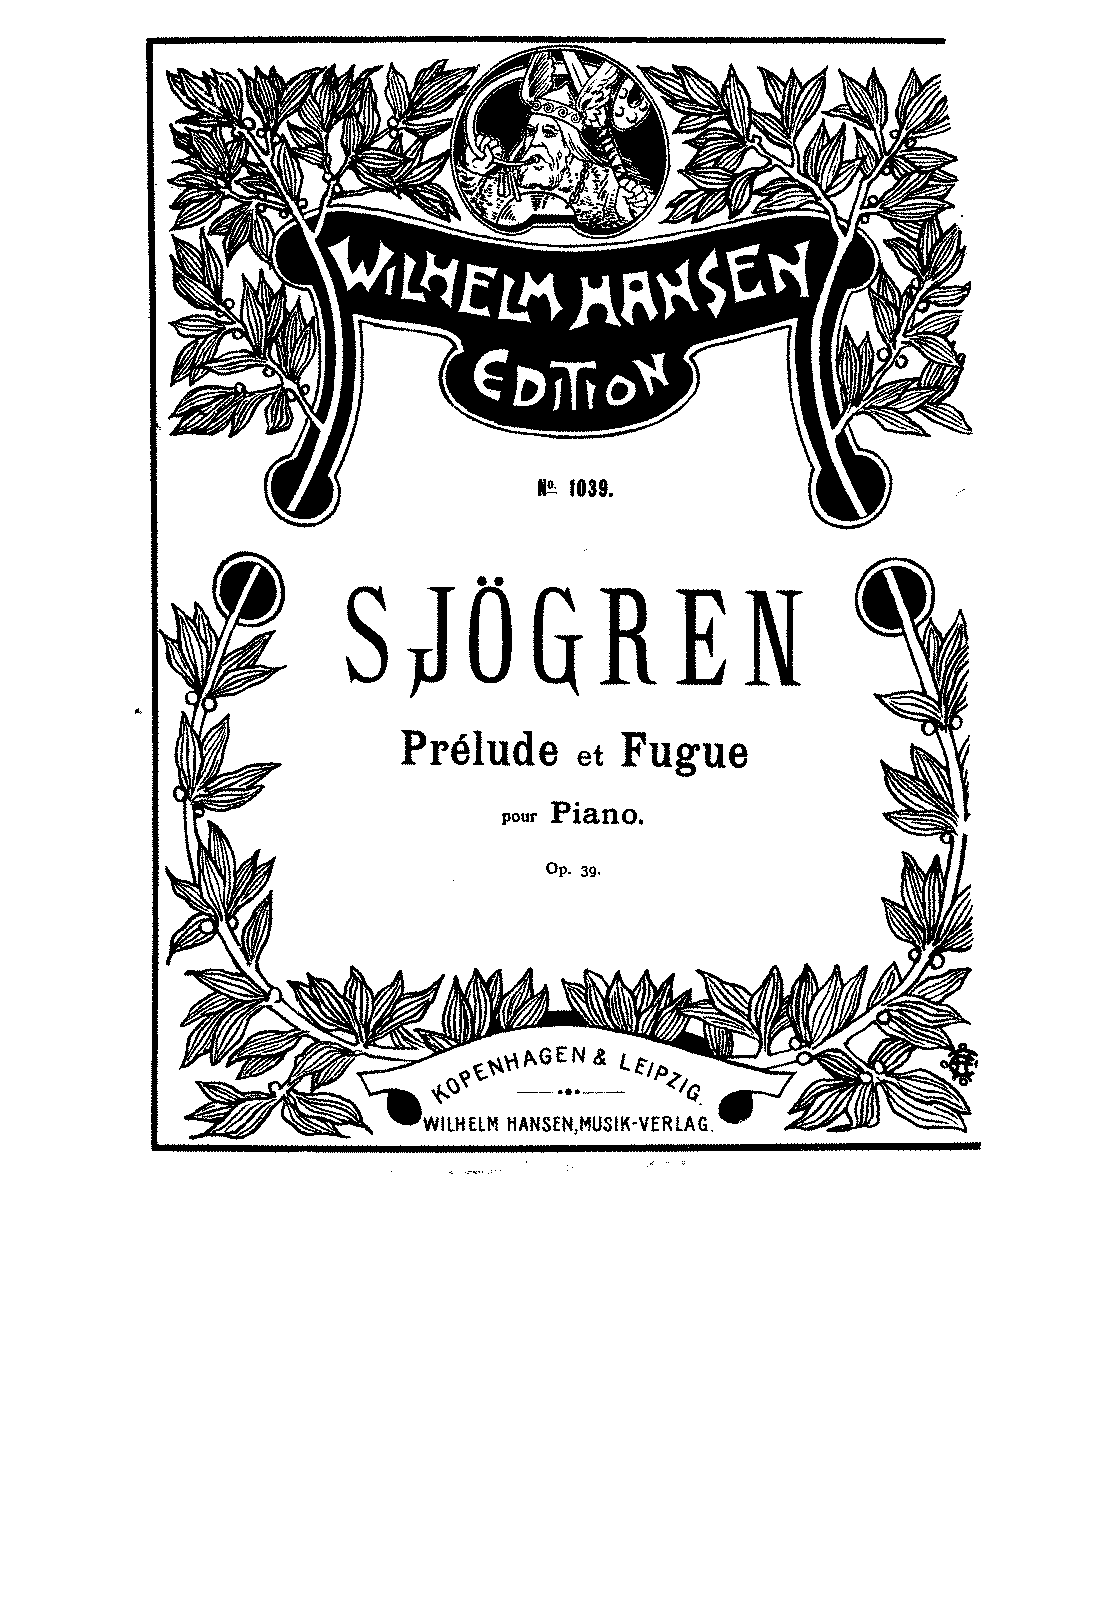 SIBLEY1802.16972.3a60-39087012351880prelude.pdf